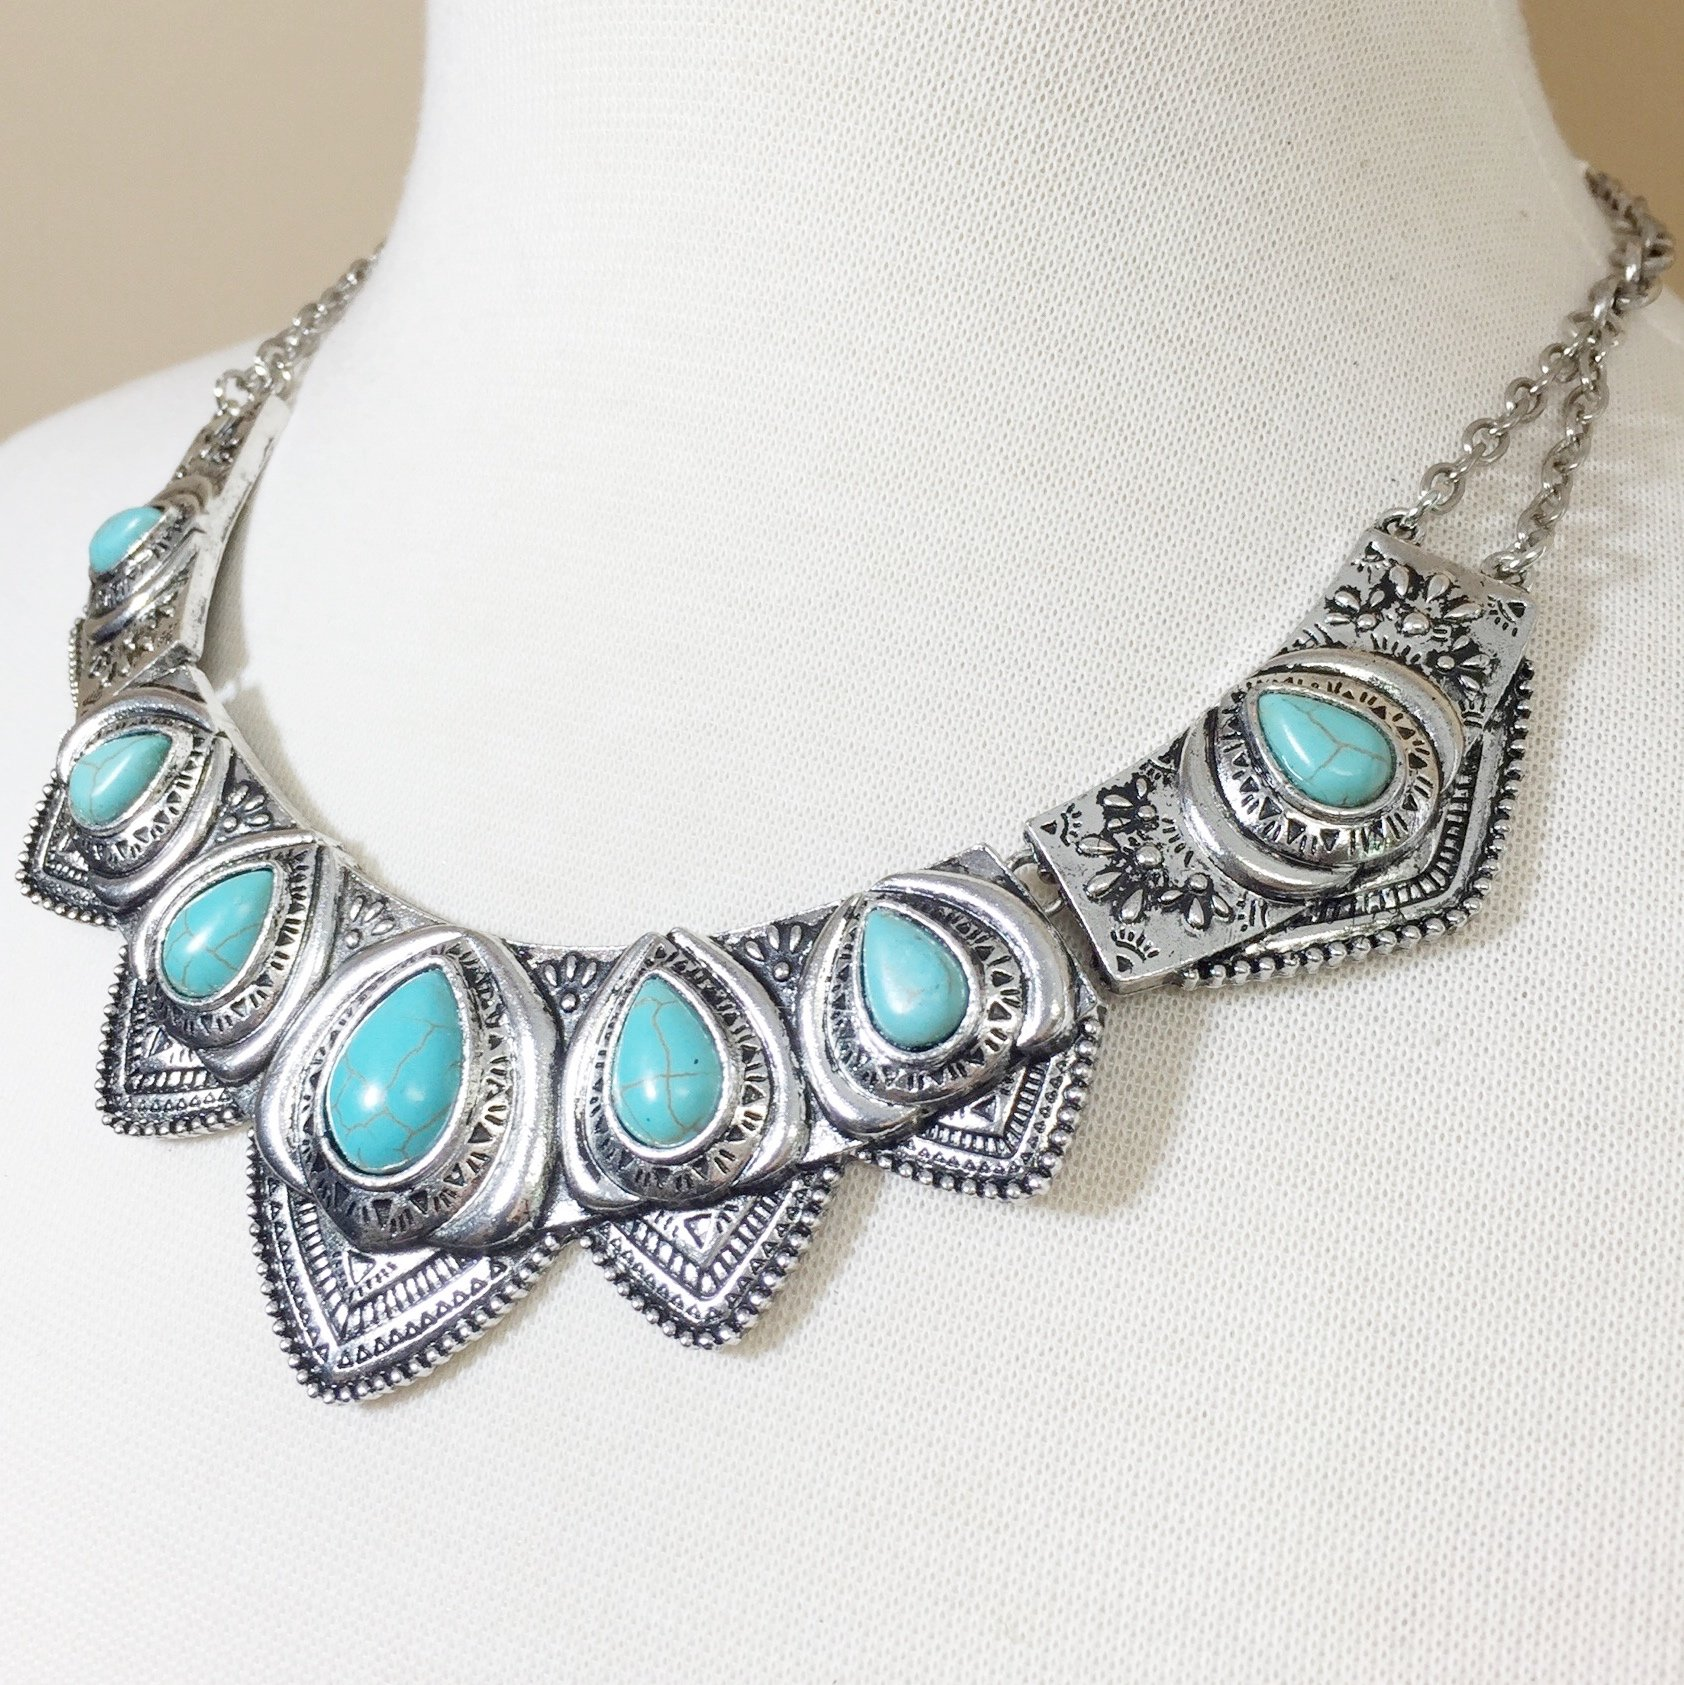 Western Style Imitation Turquoise Necklace and Earrings Set (Silver Tone Scalloped) by Gypsy Jewels (Image #2)